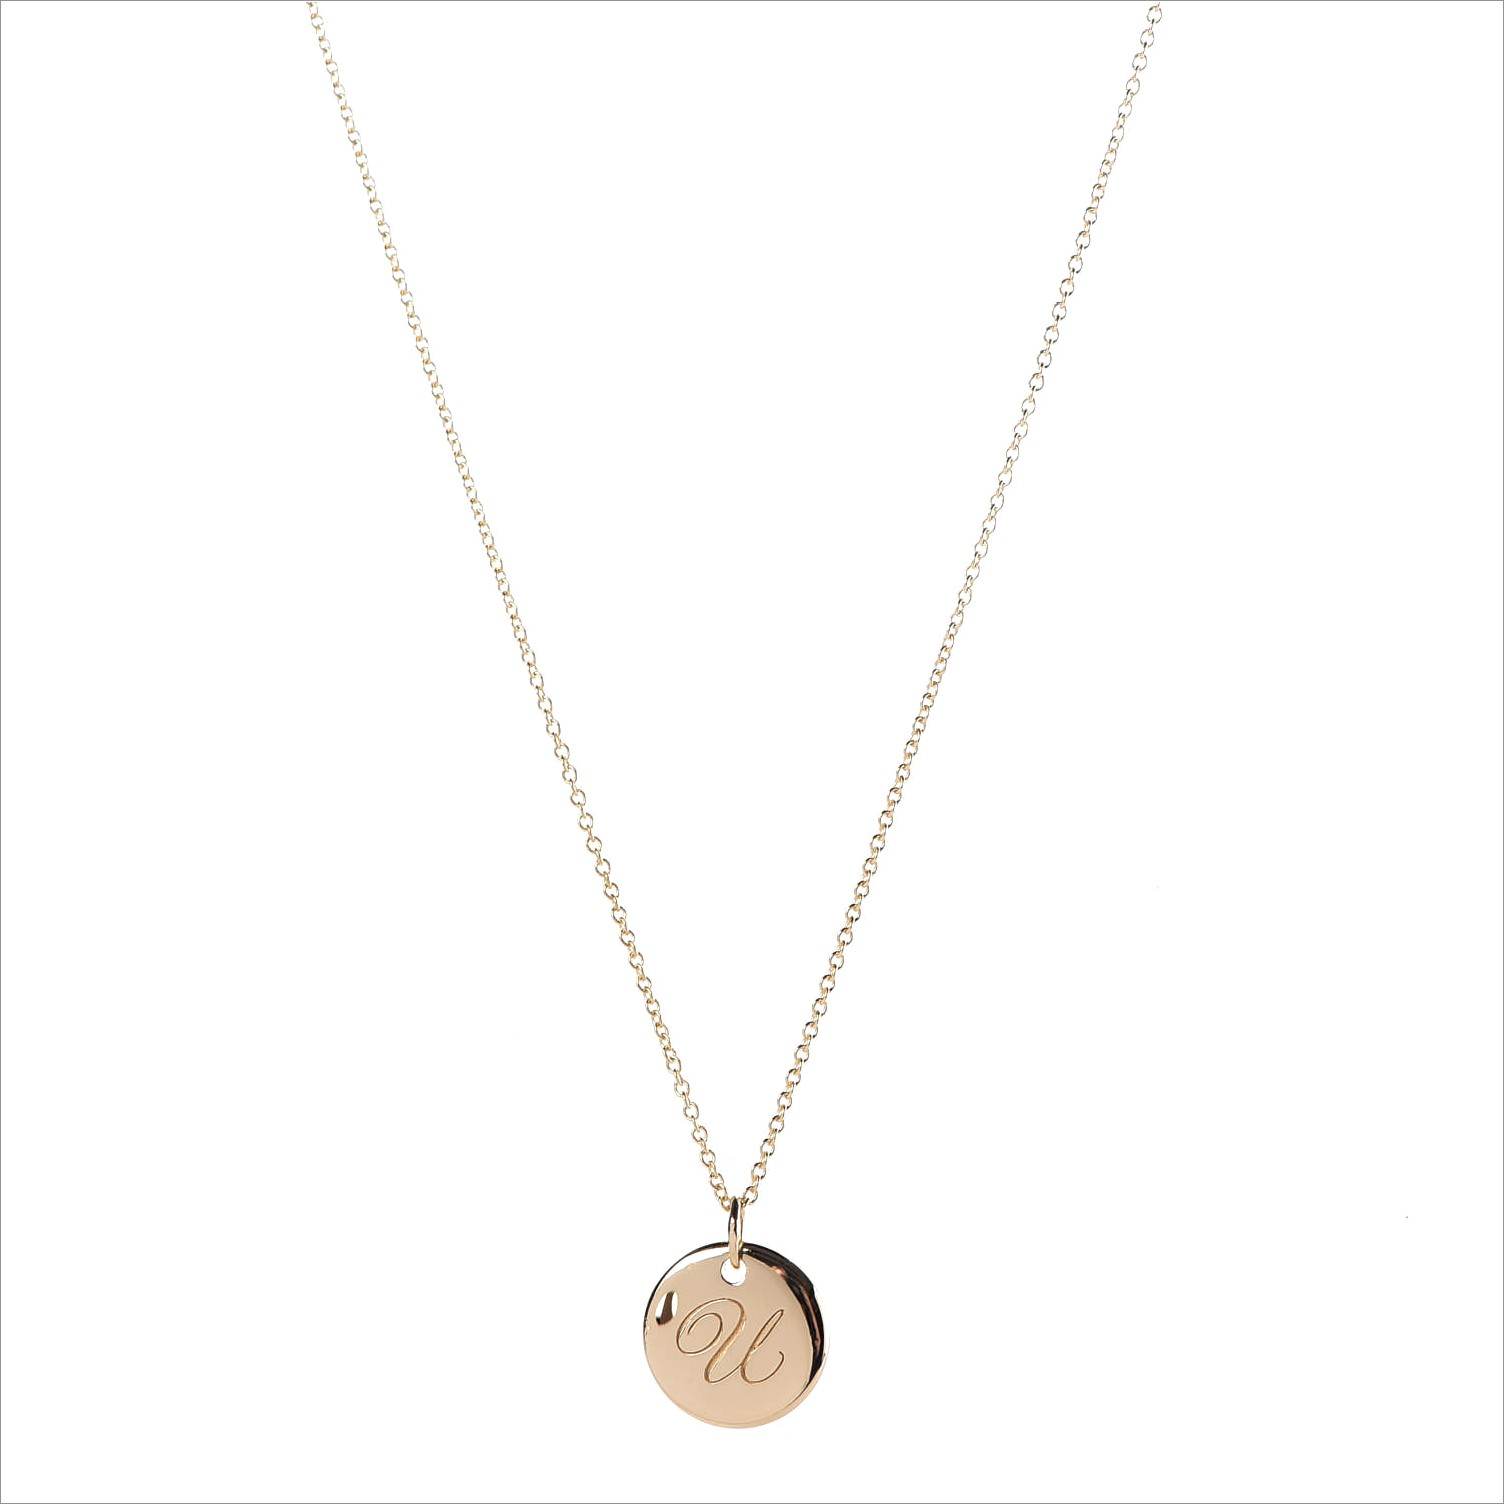 Tiffany Letter Pendant Necklace